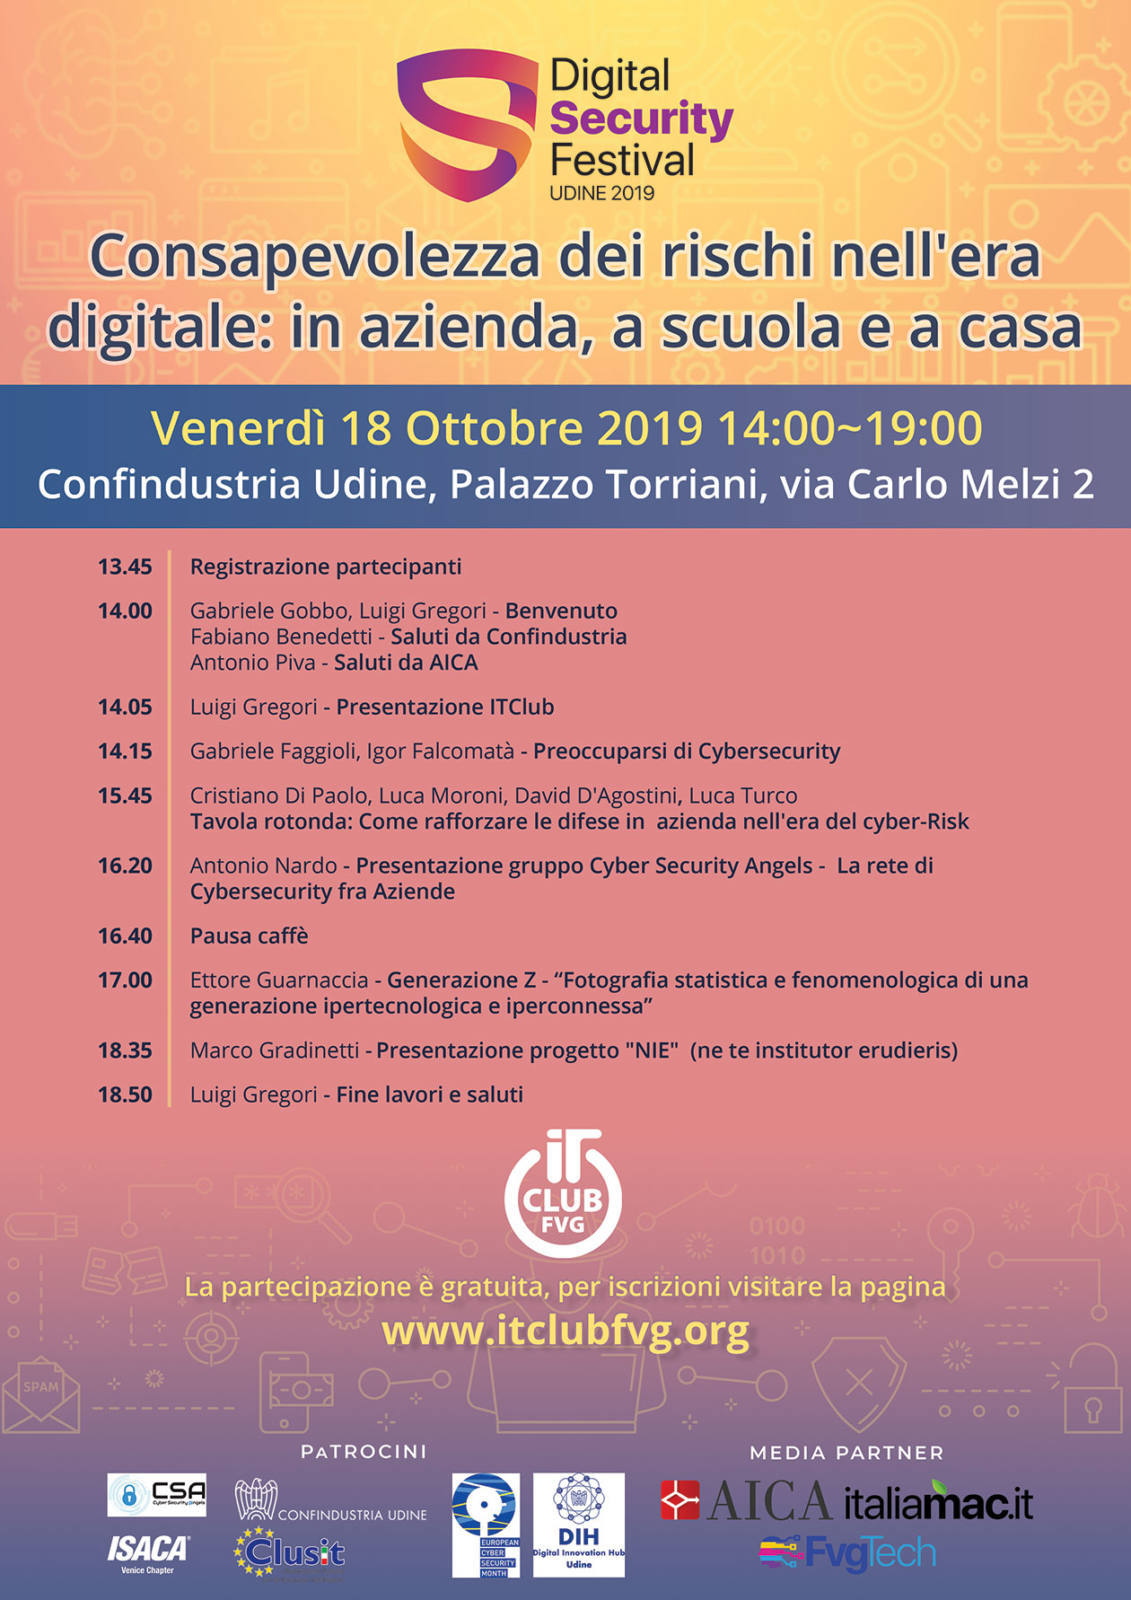 locandina itc digital security FvgTech partner ufficiale del Digital Security Festival 2019 di Udine